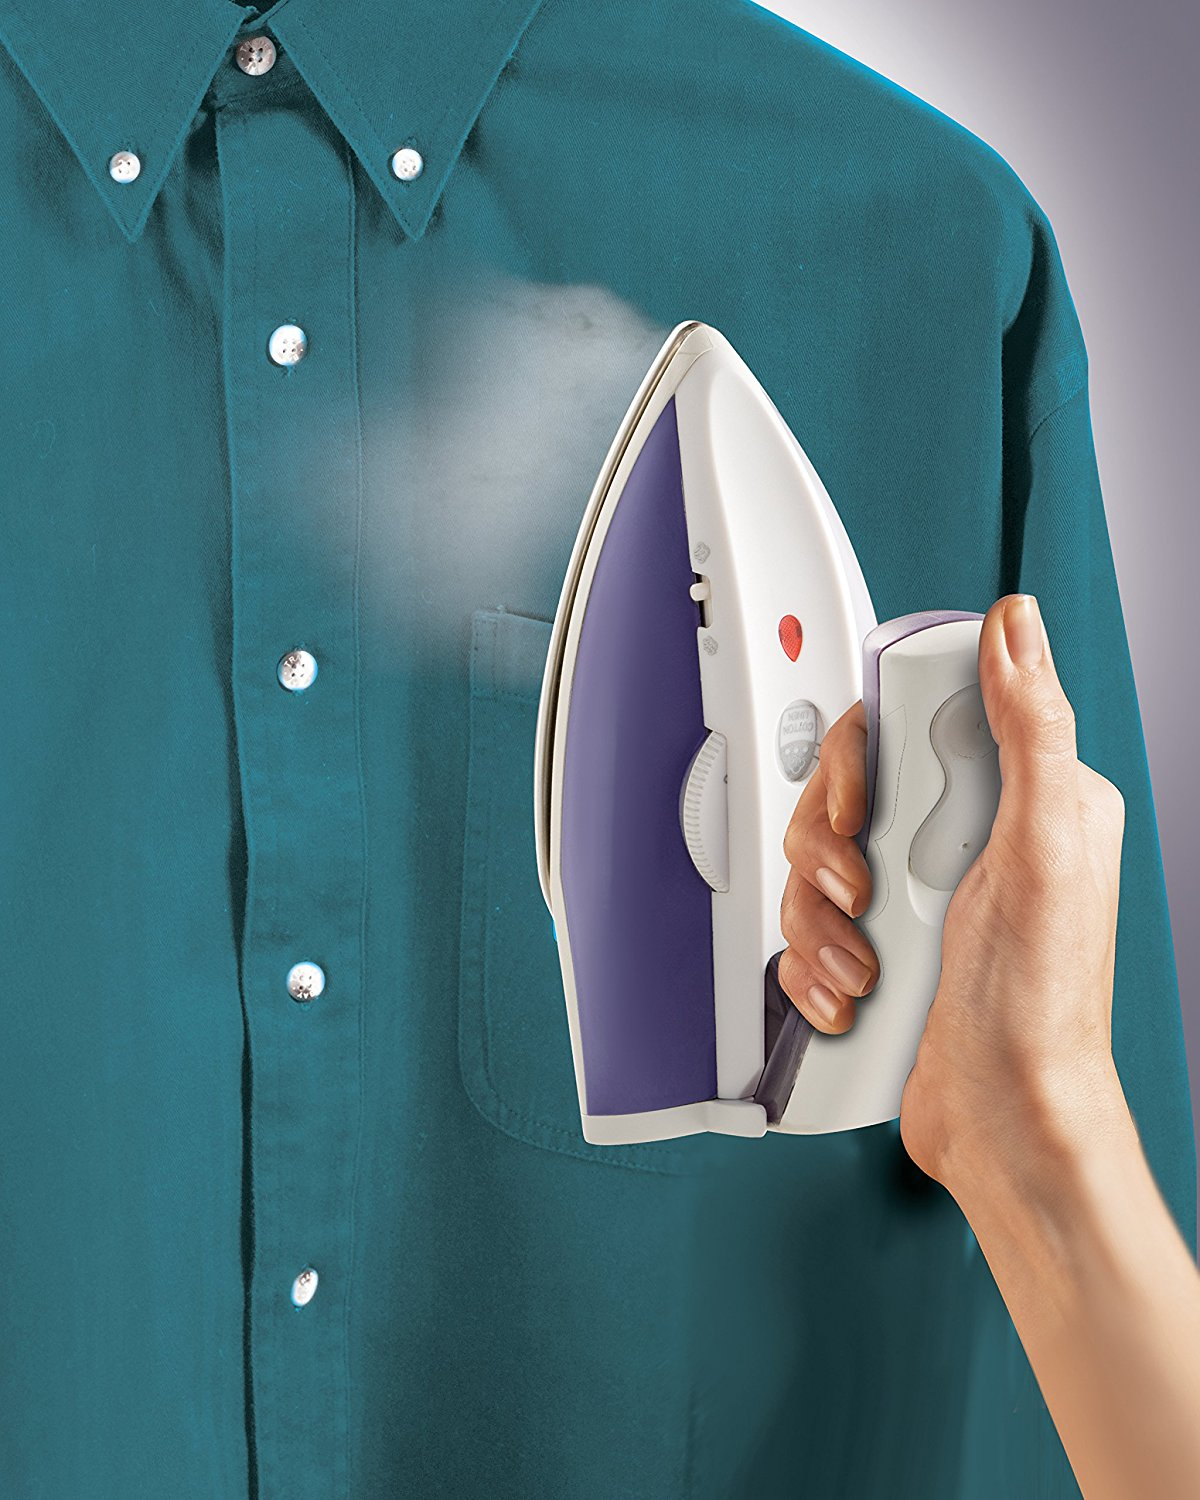 Image of Hamilton Travel Iron Steaming a Shirt